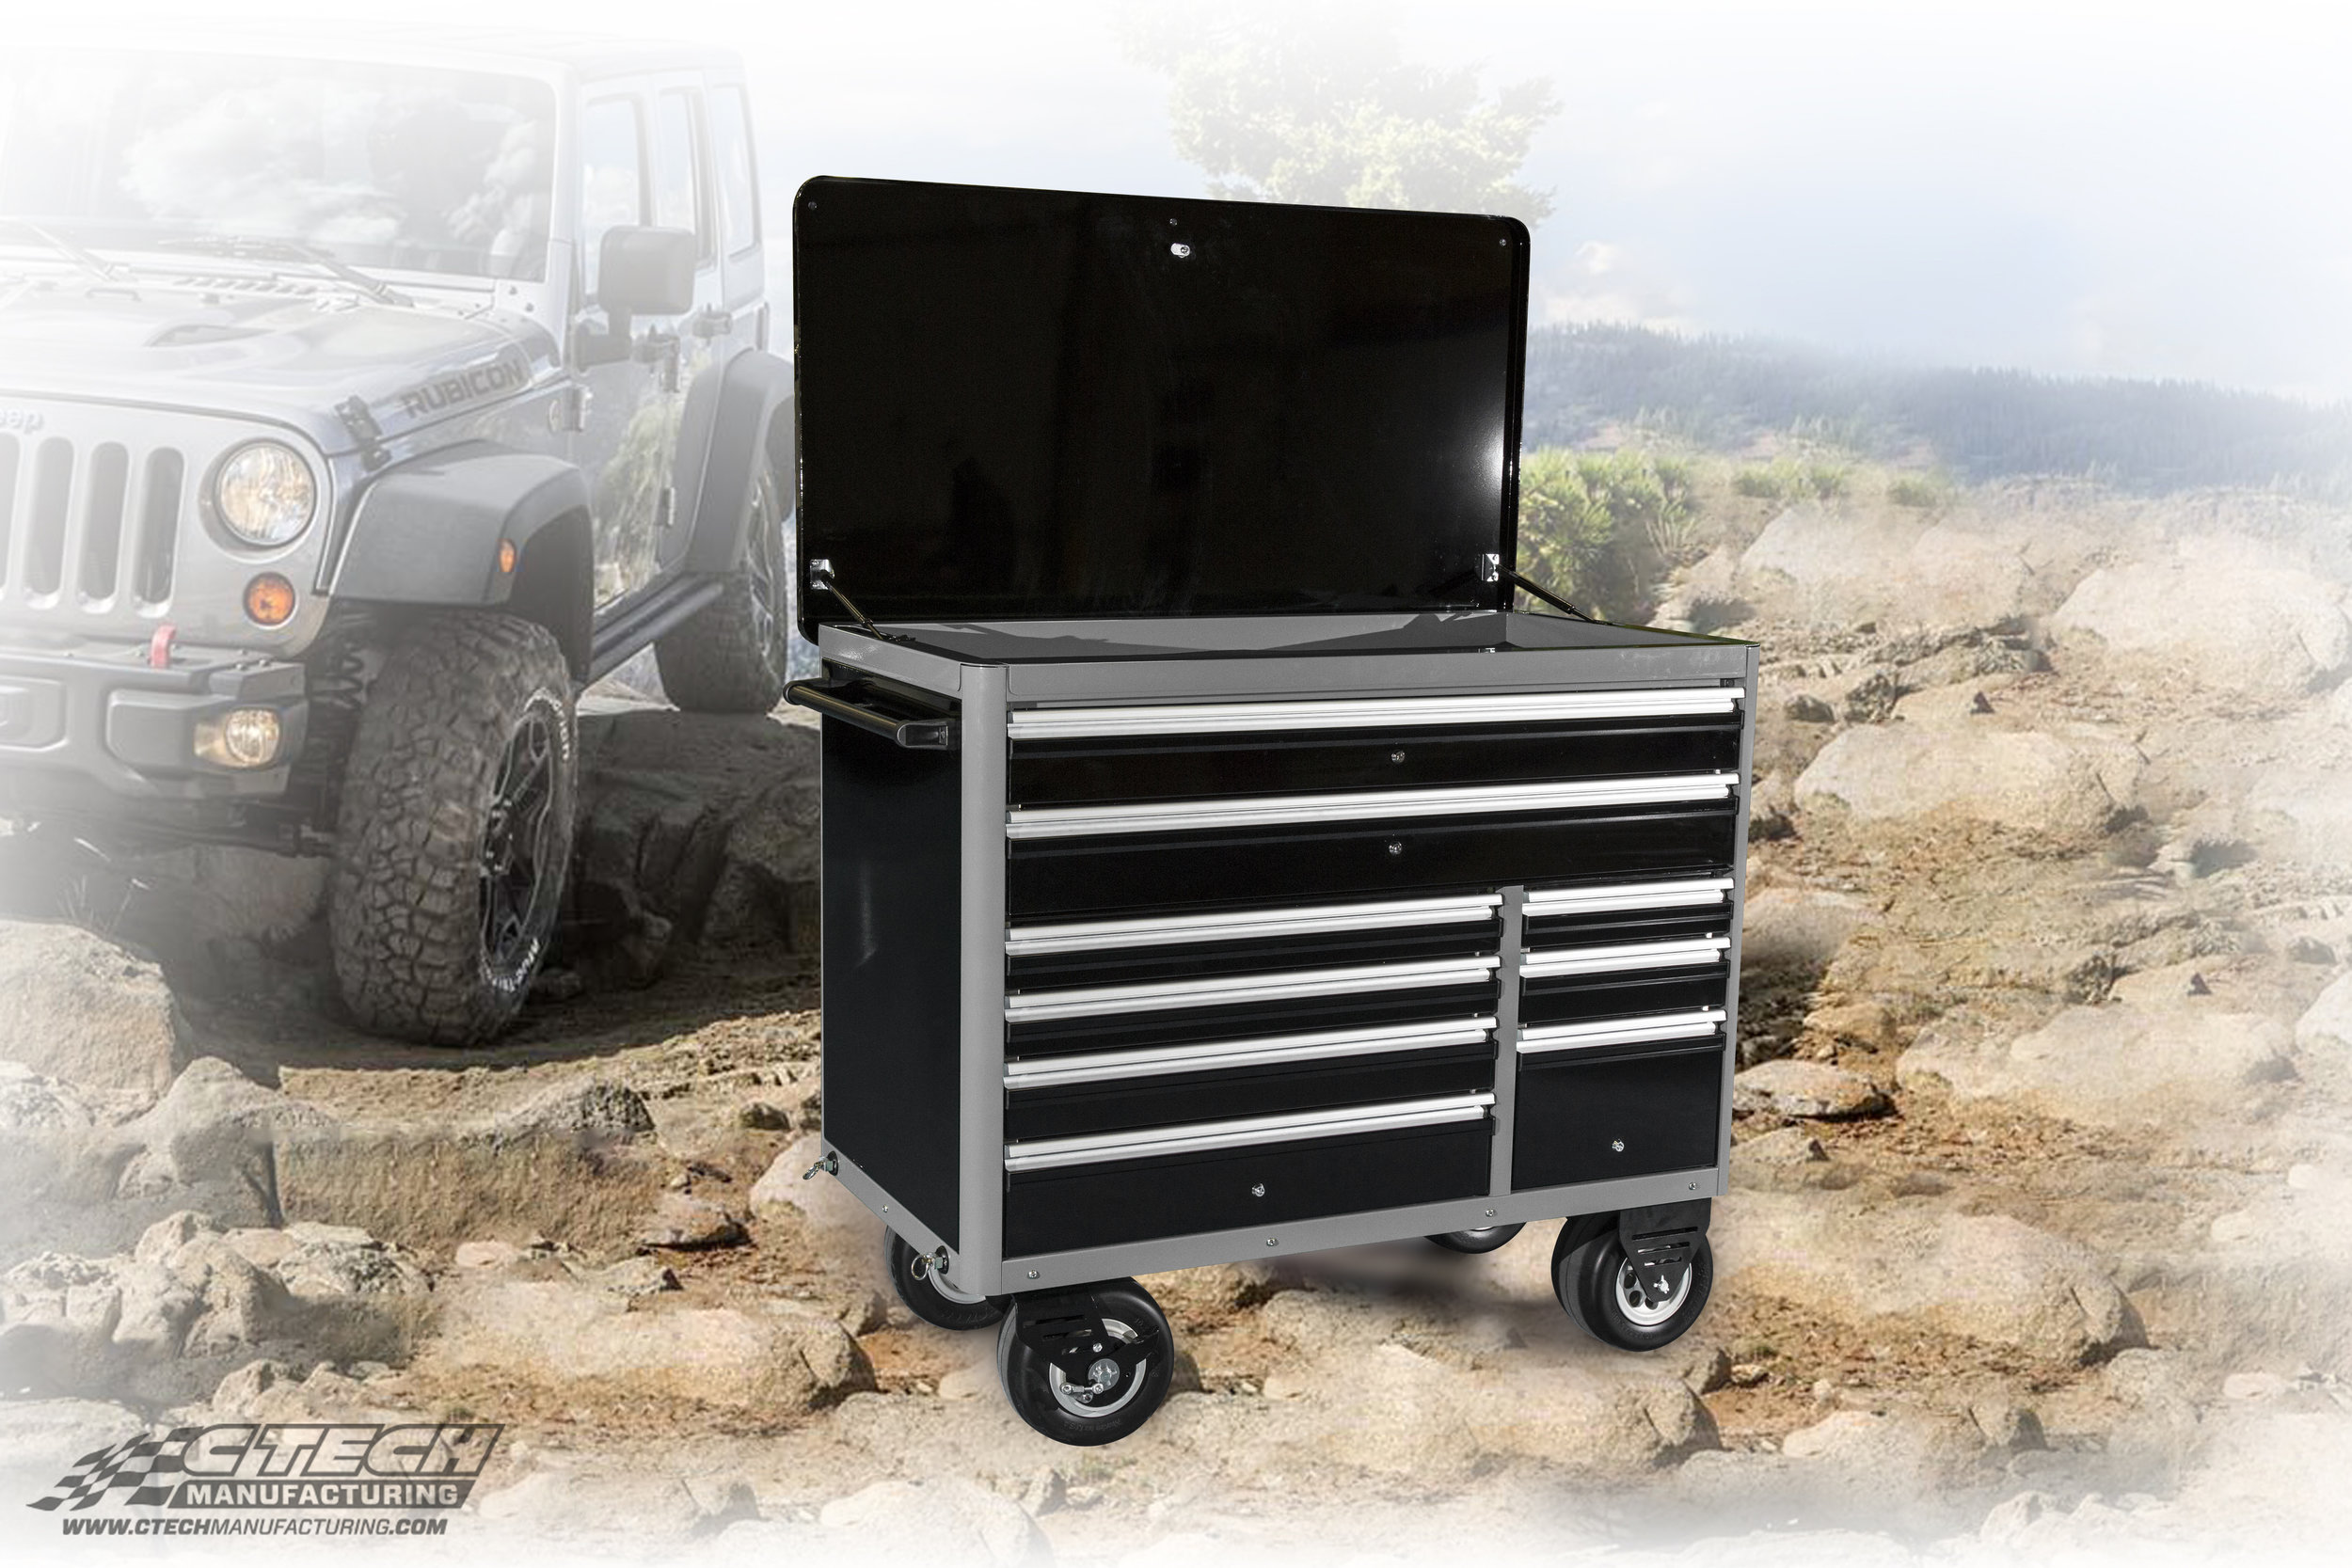 Bad Ass Caster Carts by CTECH pair the leading all-terrain caster with secure, lockable MotionLatch drawers and a flip-top lid that doubles as a worktop. Custom finishes, etchings, and engravings are also available for all carts.